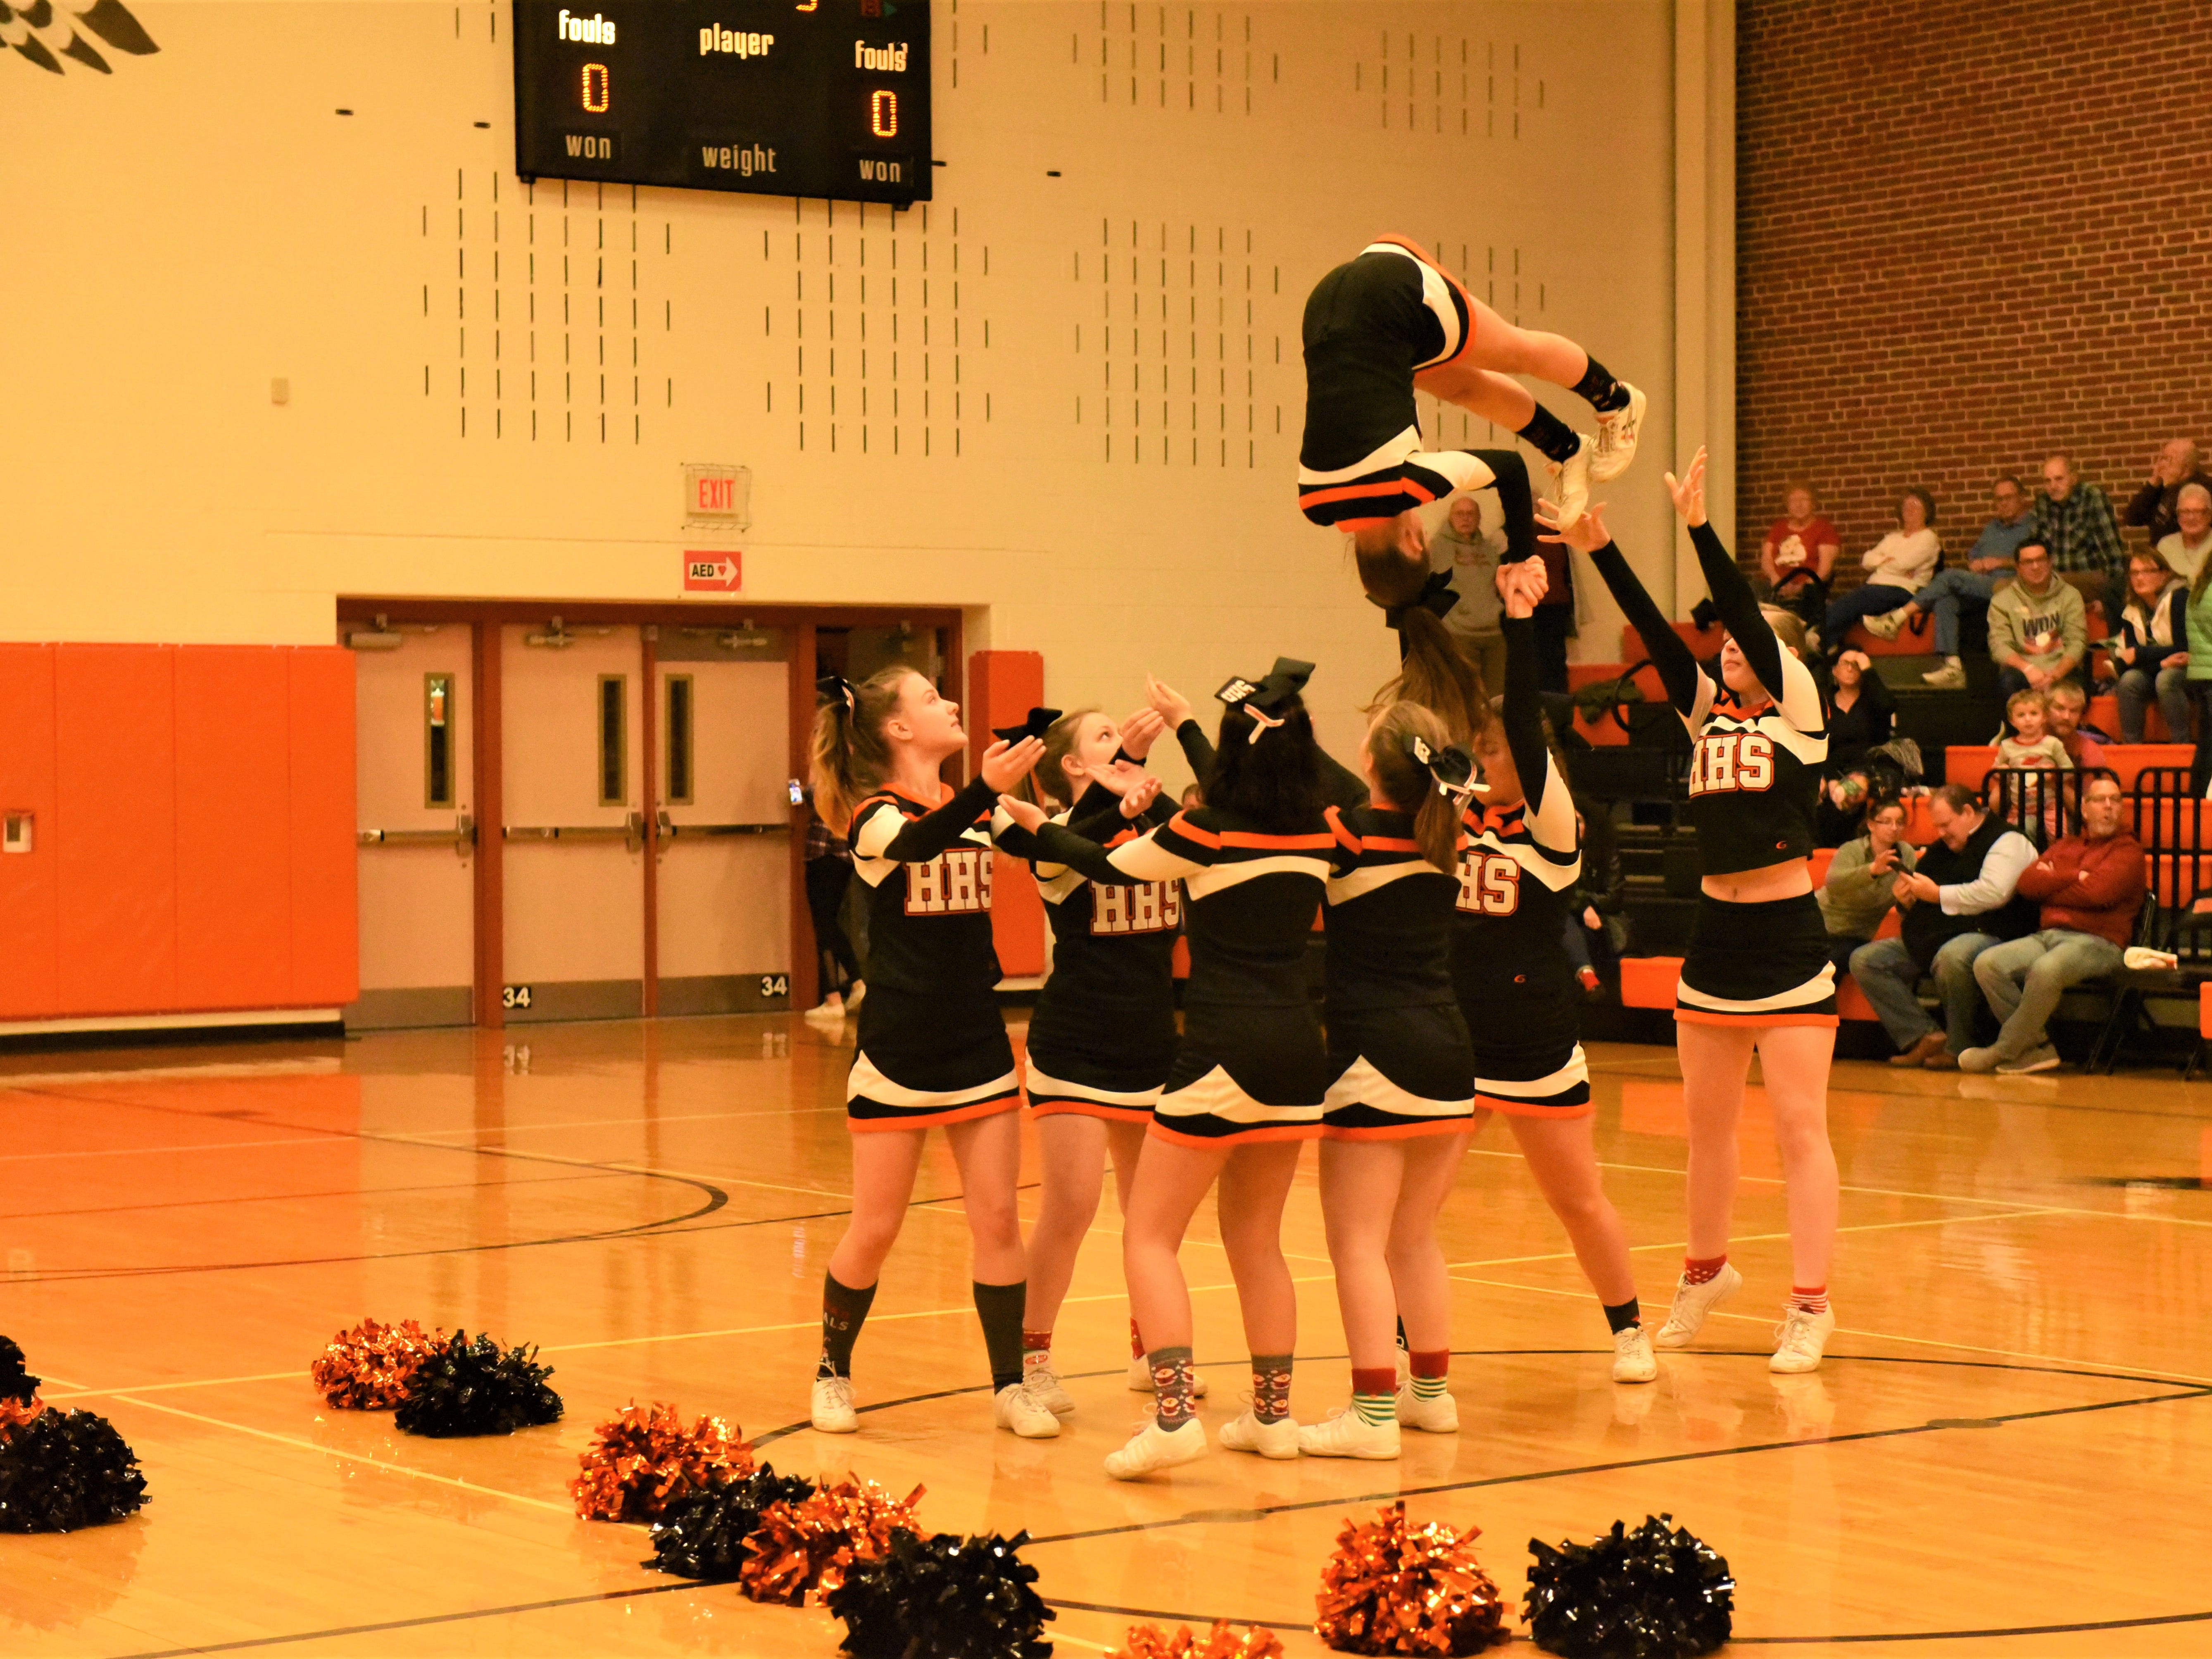 The Hanover cheerleaders half time show. Fairfield High School lost at Hanover High School on Dec. 21, 57 to 43.